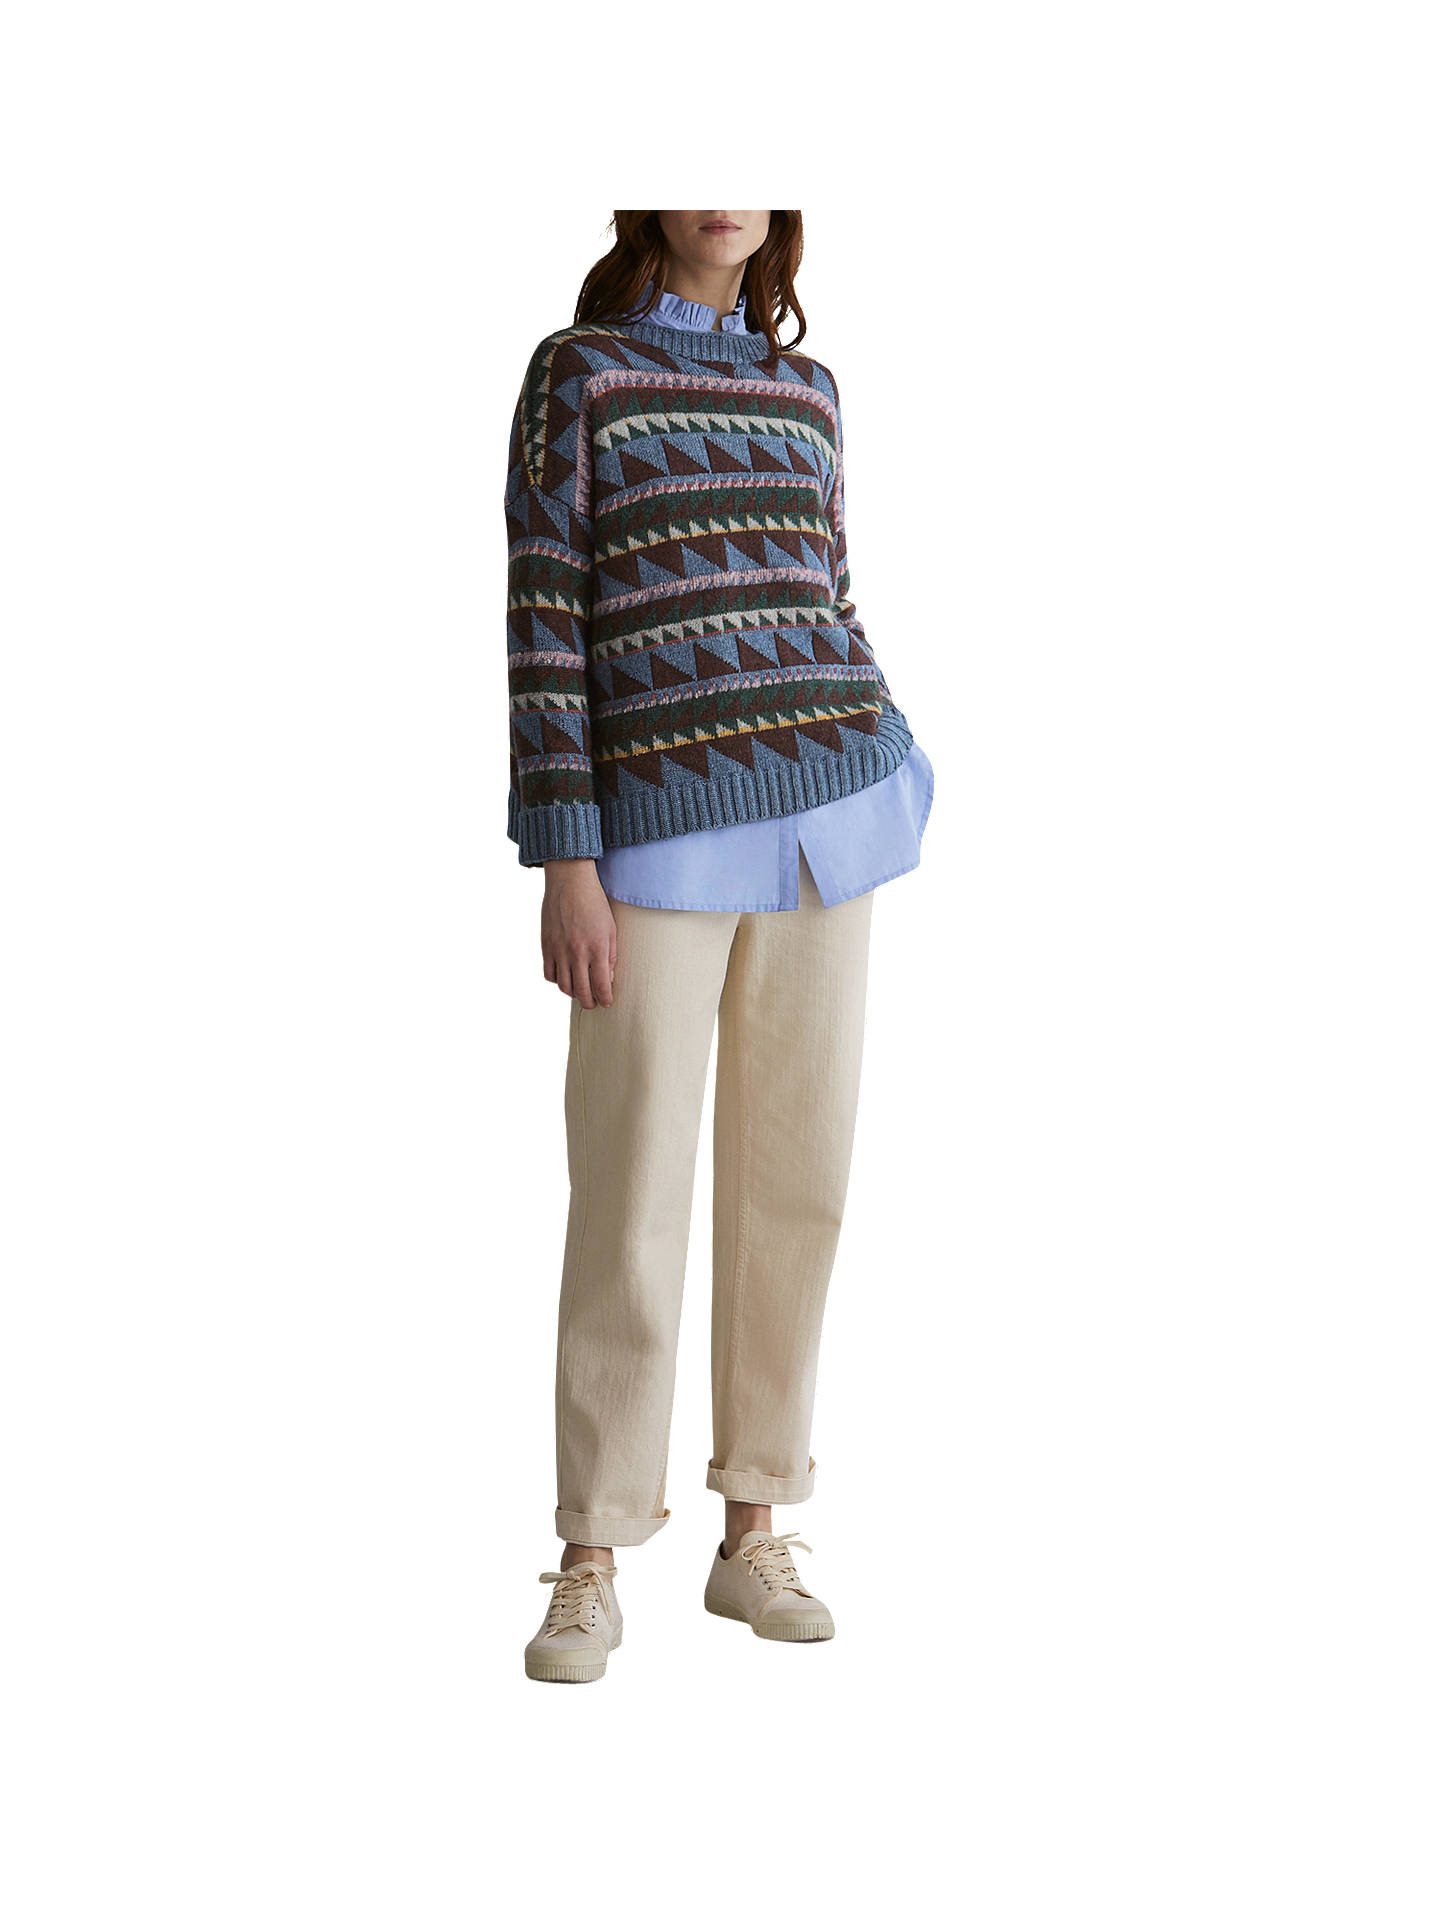 BuyToast Triangle Jacquard Wool Blend Jumper, Misty Blue/Multi, XS-S Online at johnlewis.com